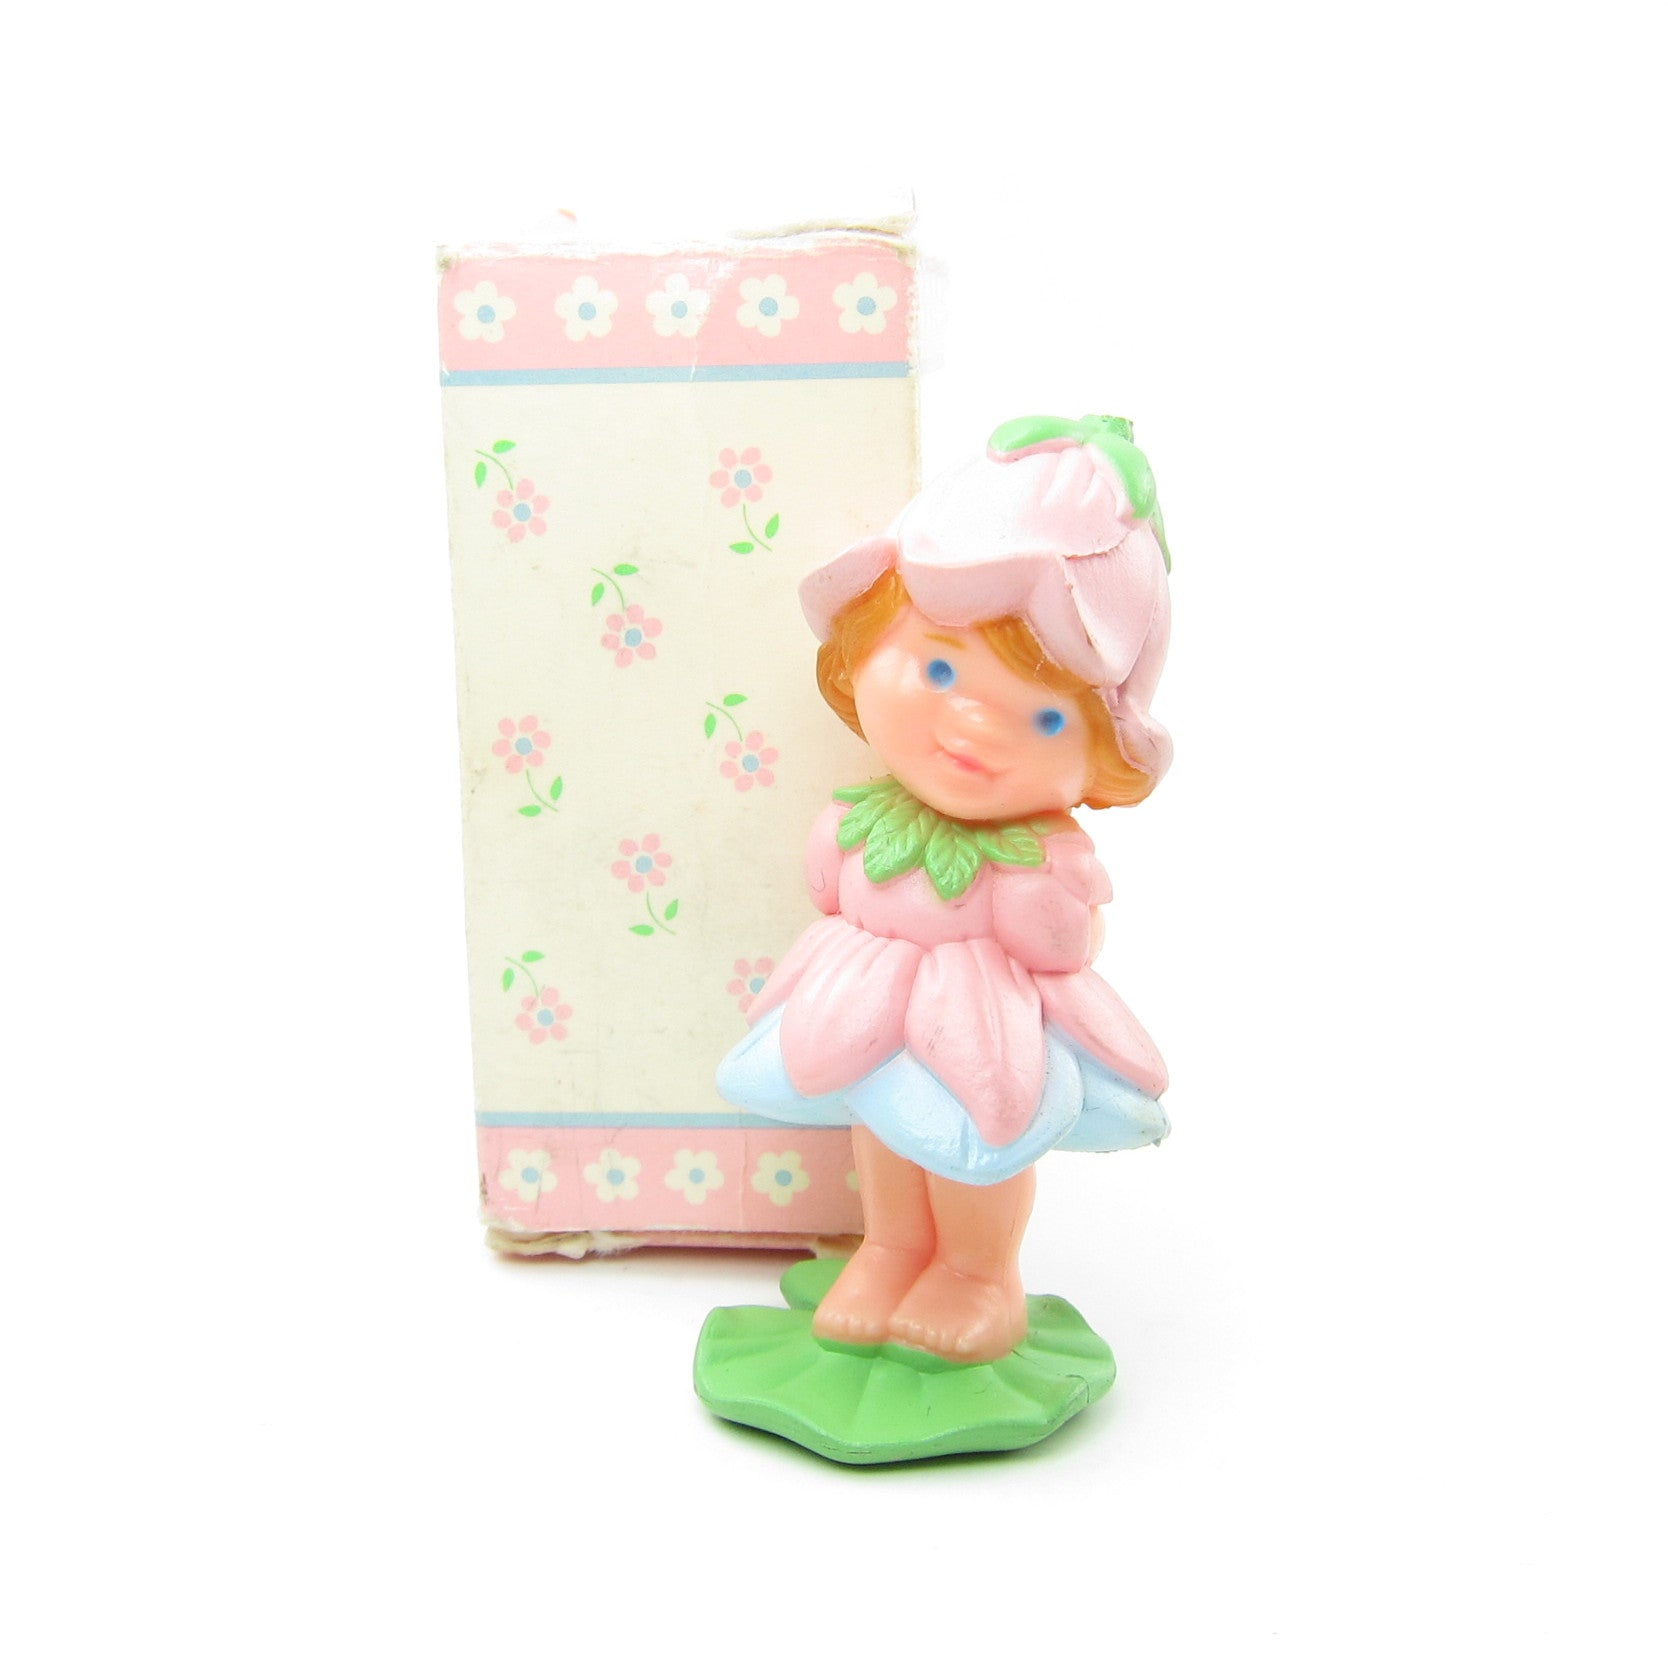 Avon Little Blossom mini doll with box